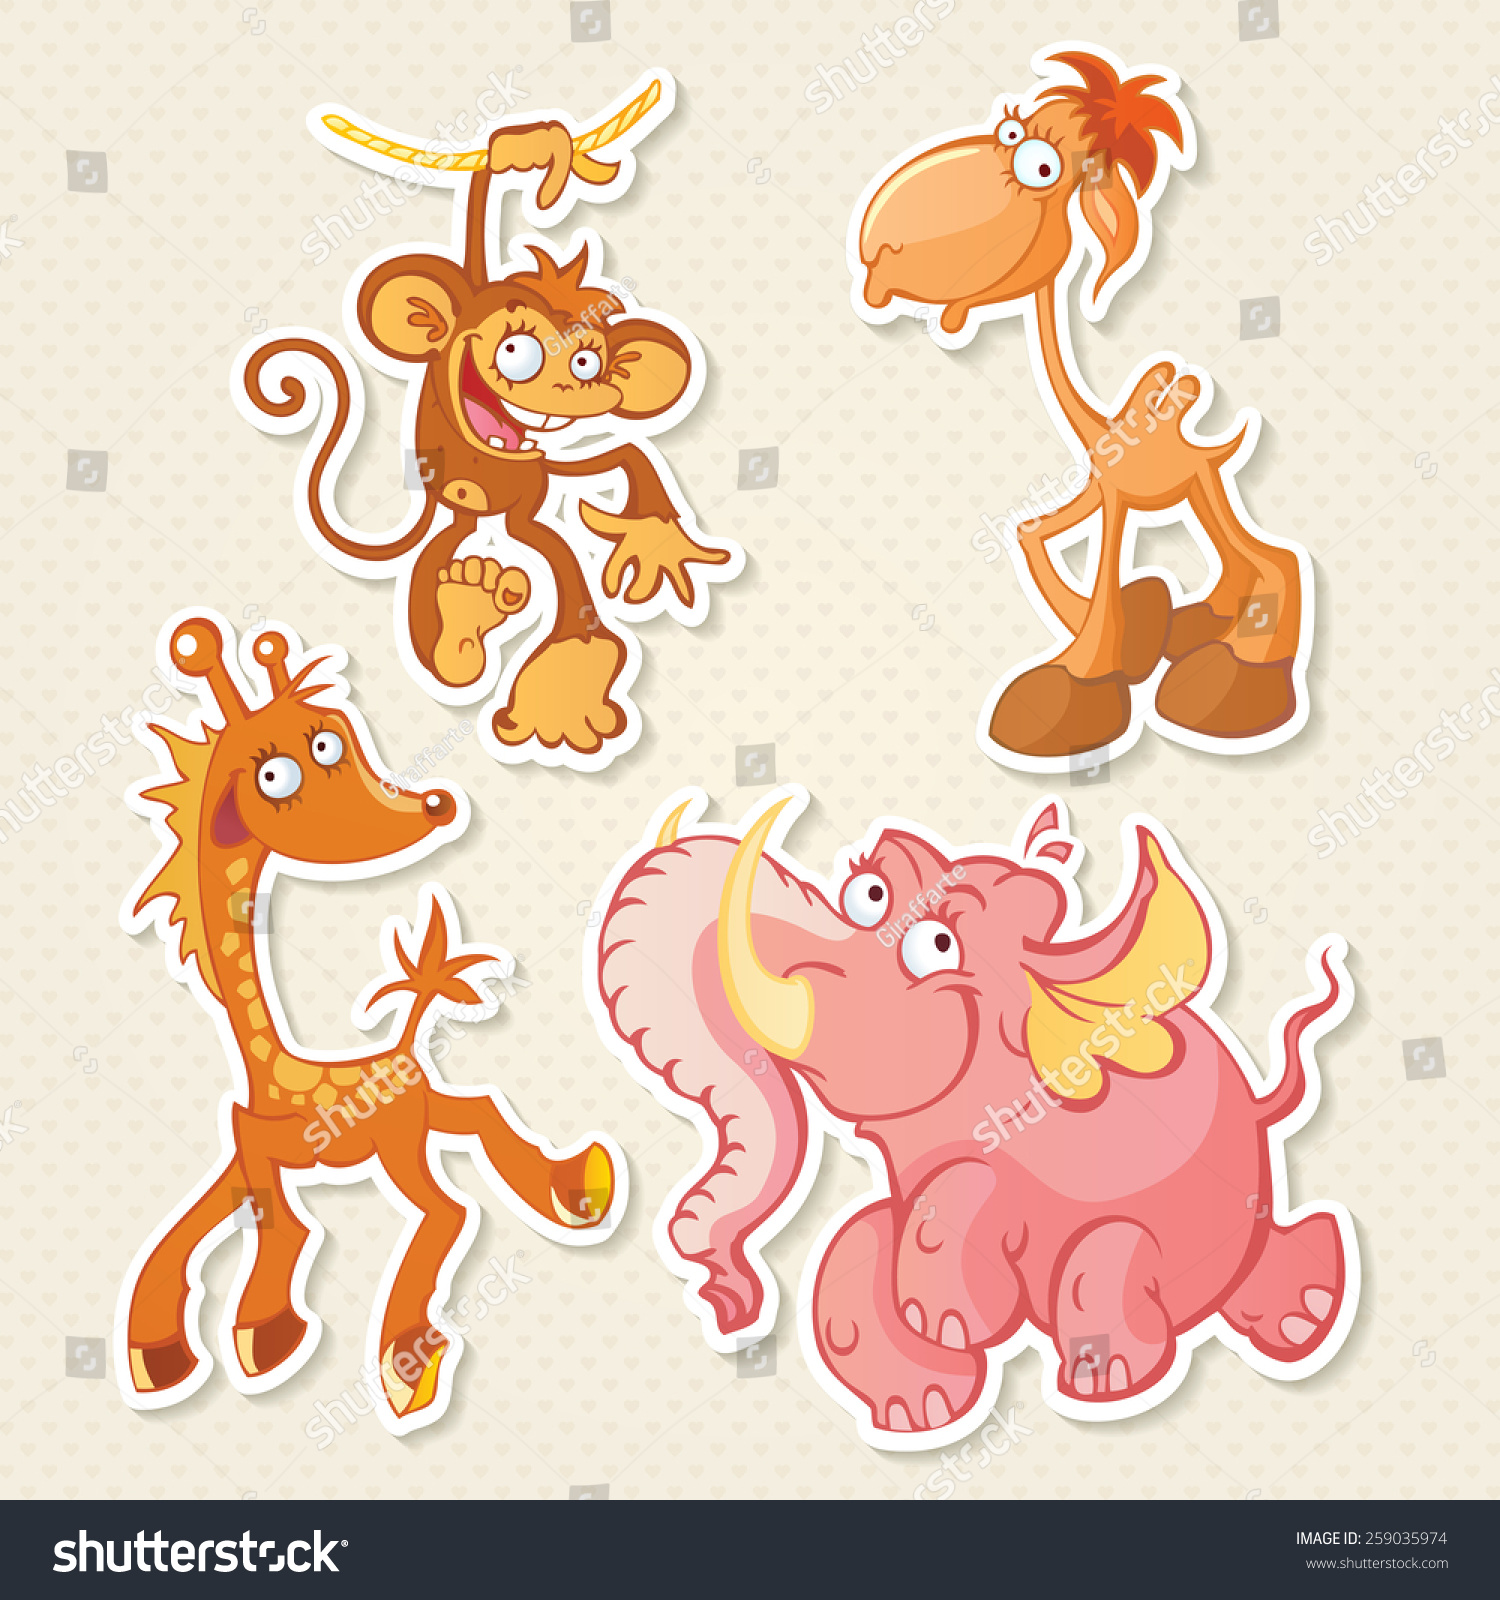 Vector animals cartoon characters cool sticker designs